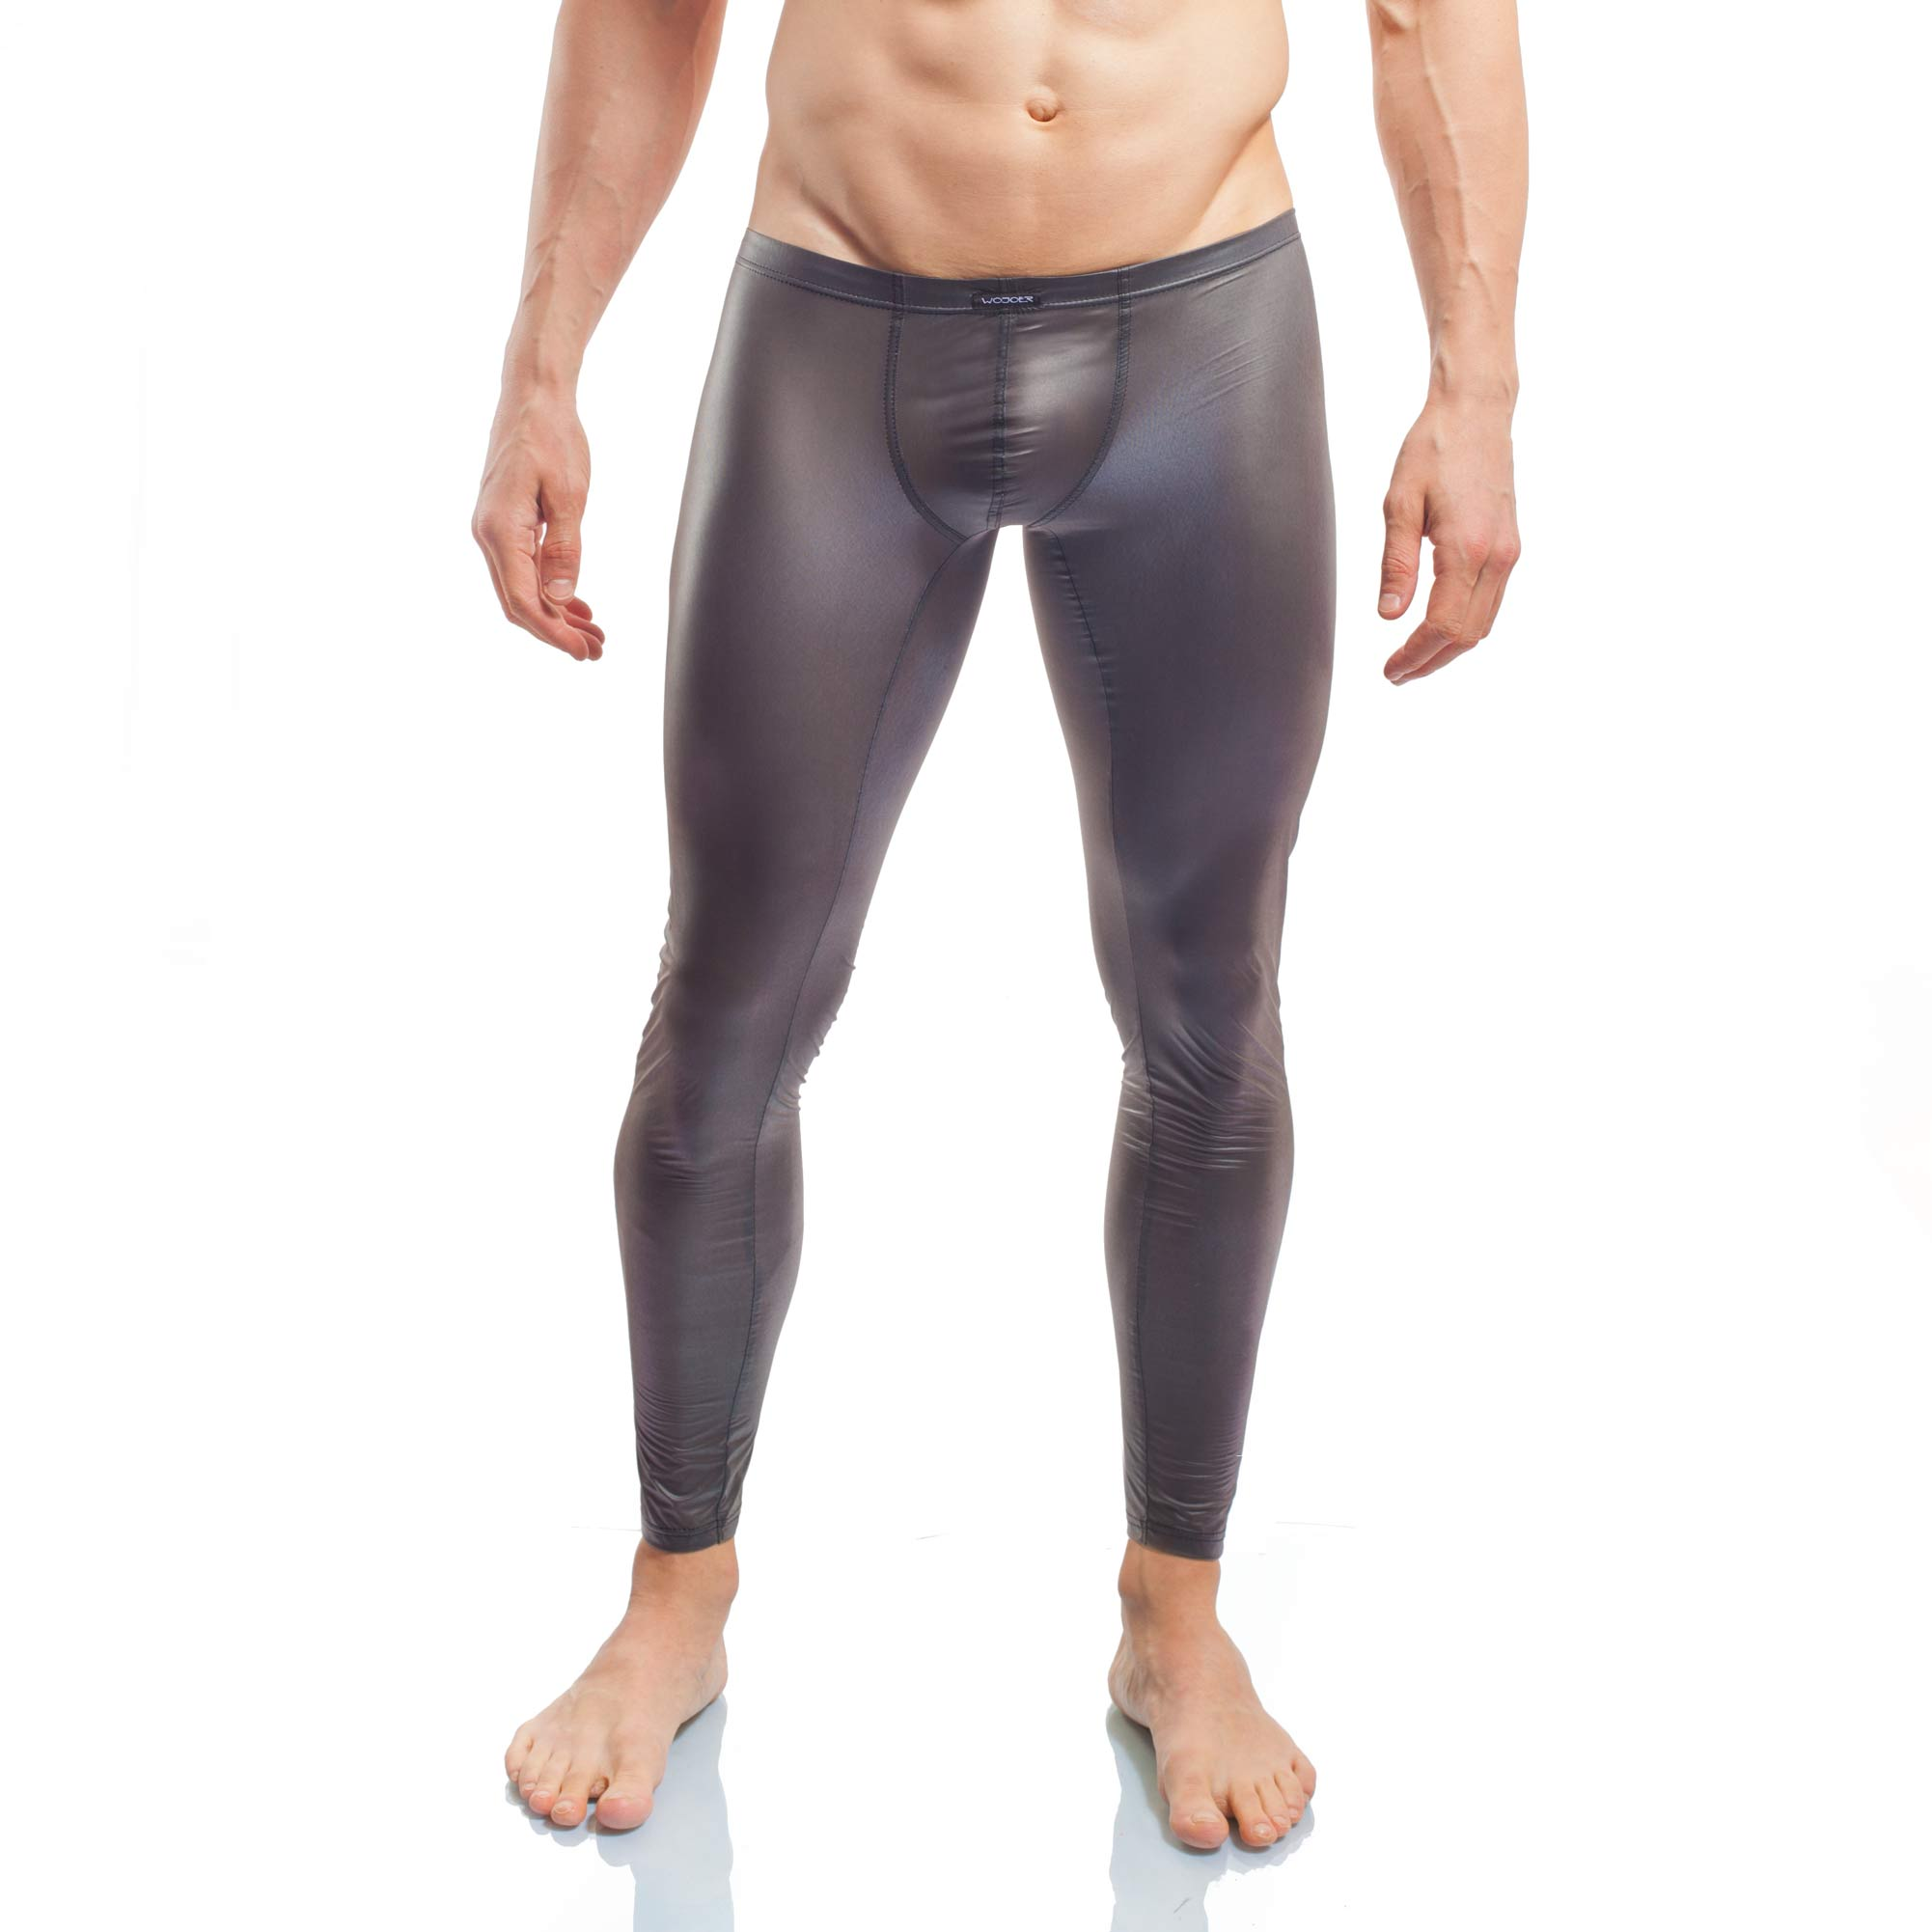 Schwarze Leggings, FunXtion schwarz, Synthetisches Latex, Gummi, transparent, Leggings, schwarz